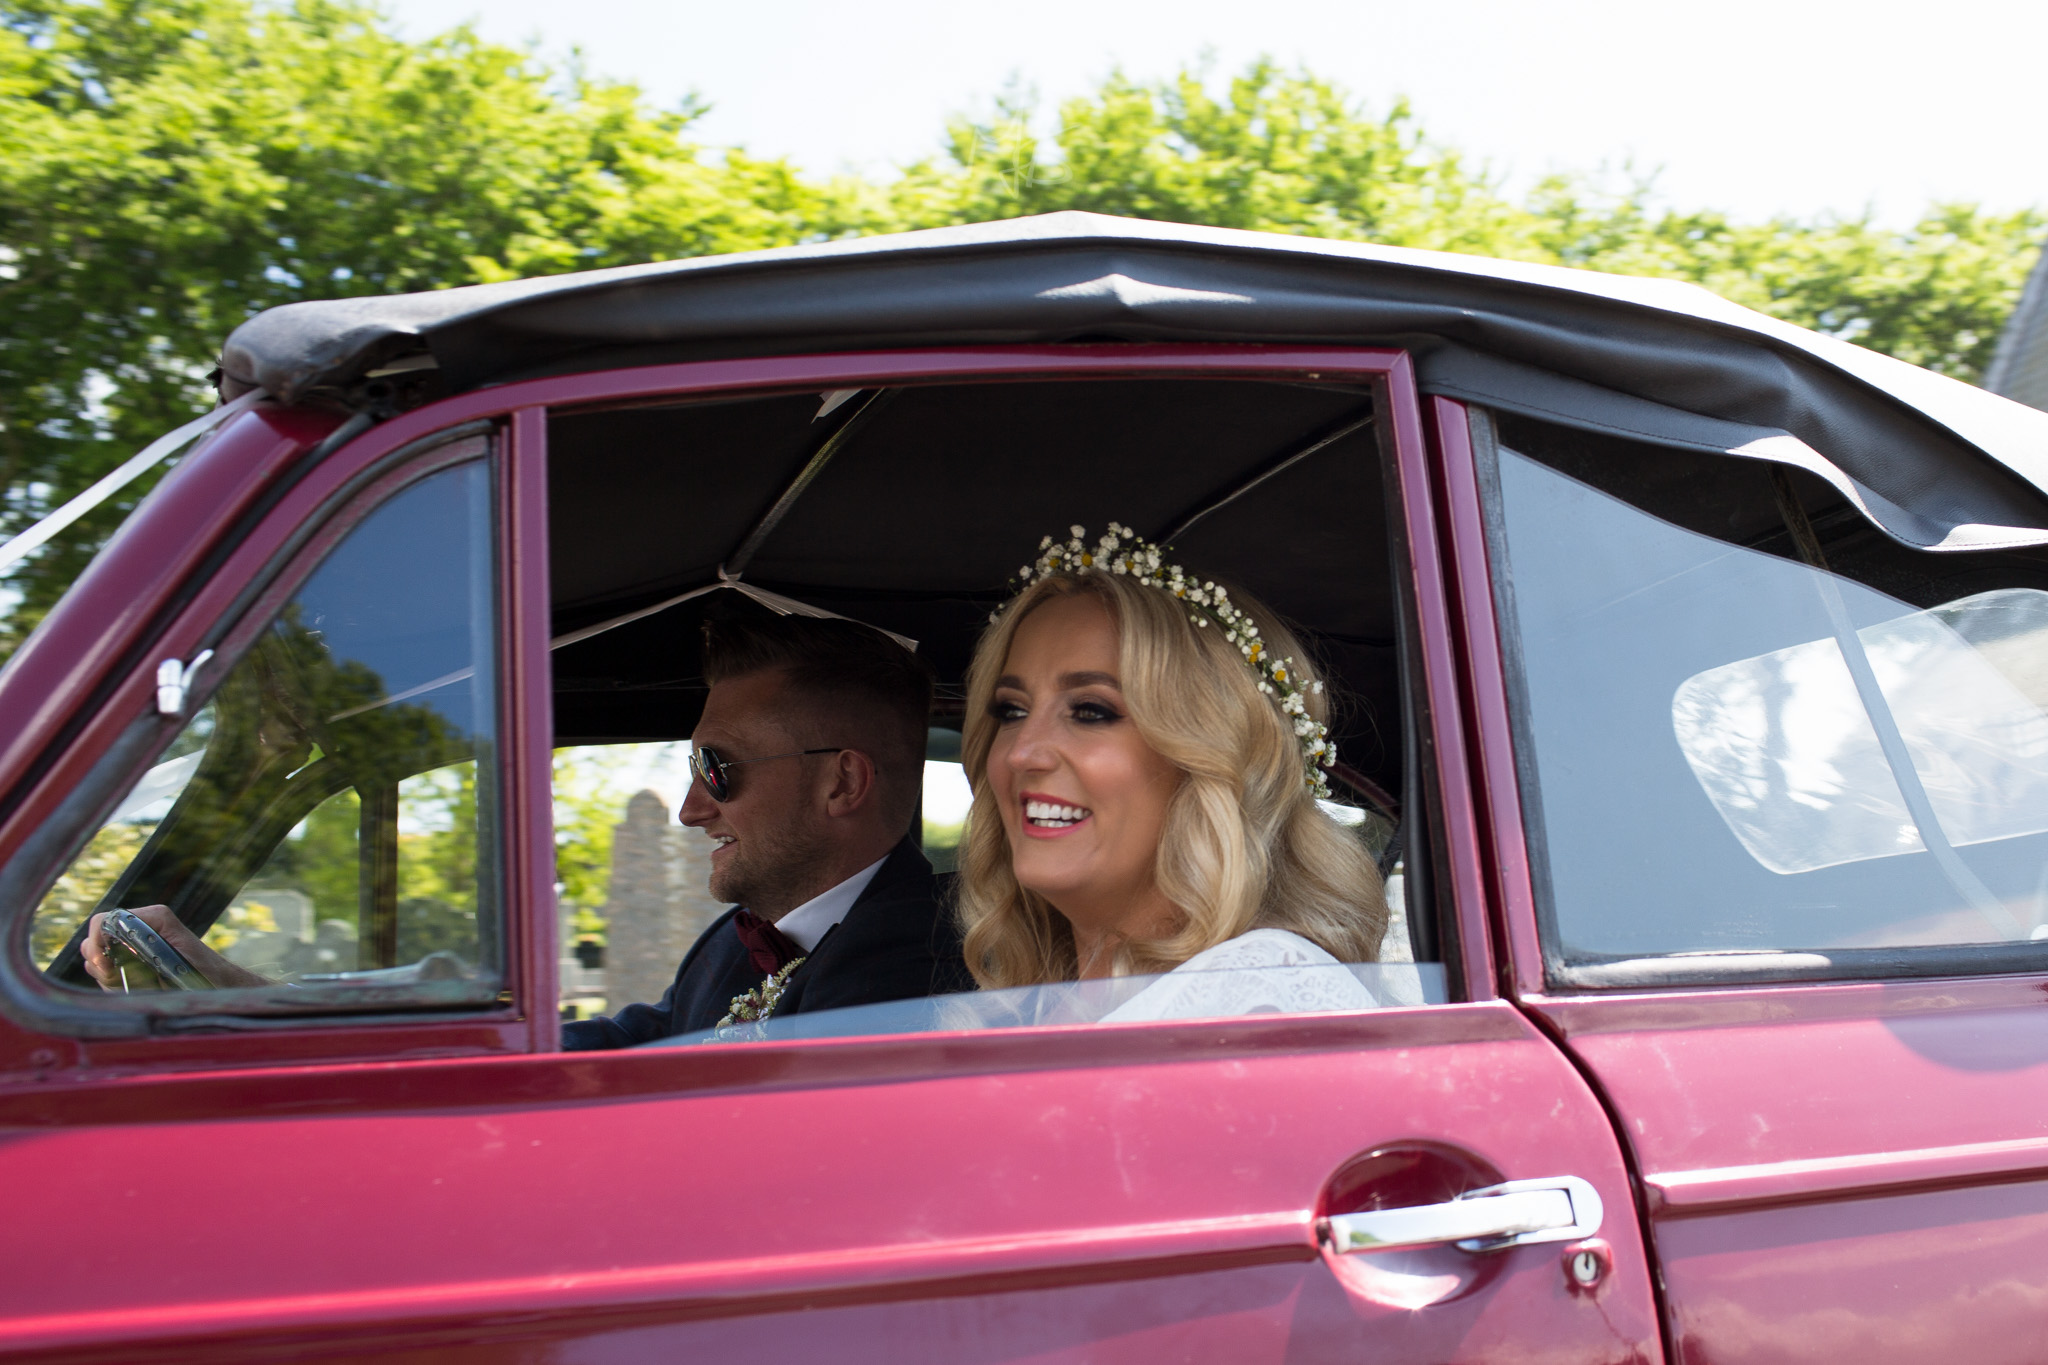 Northern_Ireland_Wedding-Photographer-Mark-Barnes-Newry_wedding_Photography-Katie&Darren-37.jpg